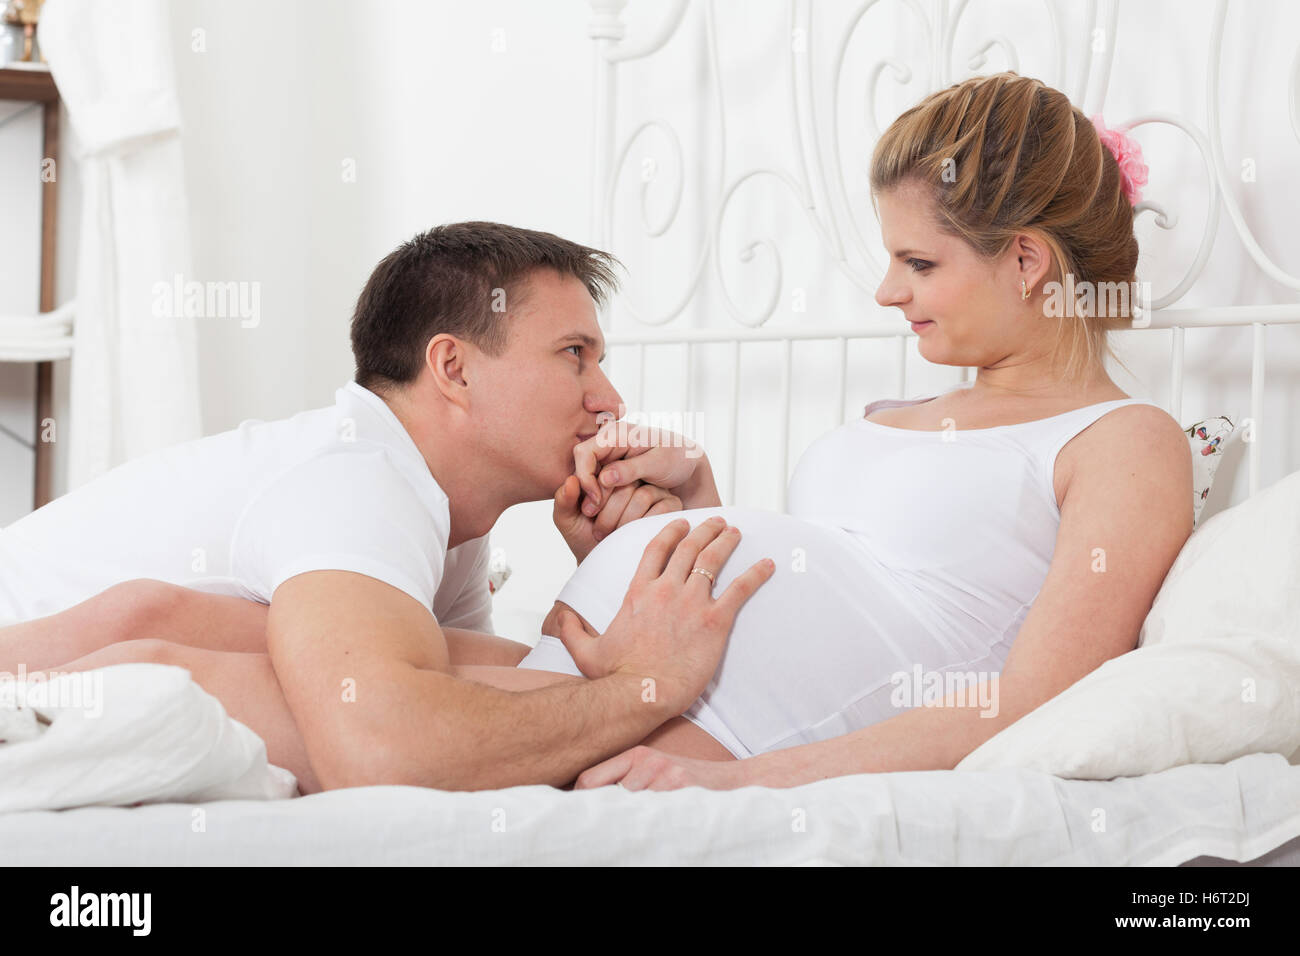 Husband Wife Baby Delivery Stock Photos Husband Wife Baby Delivery